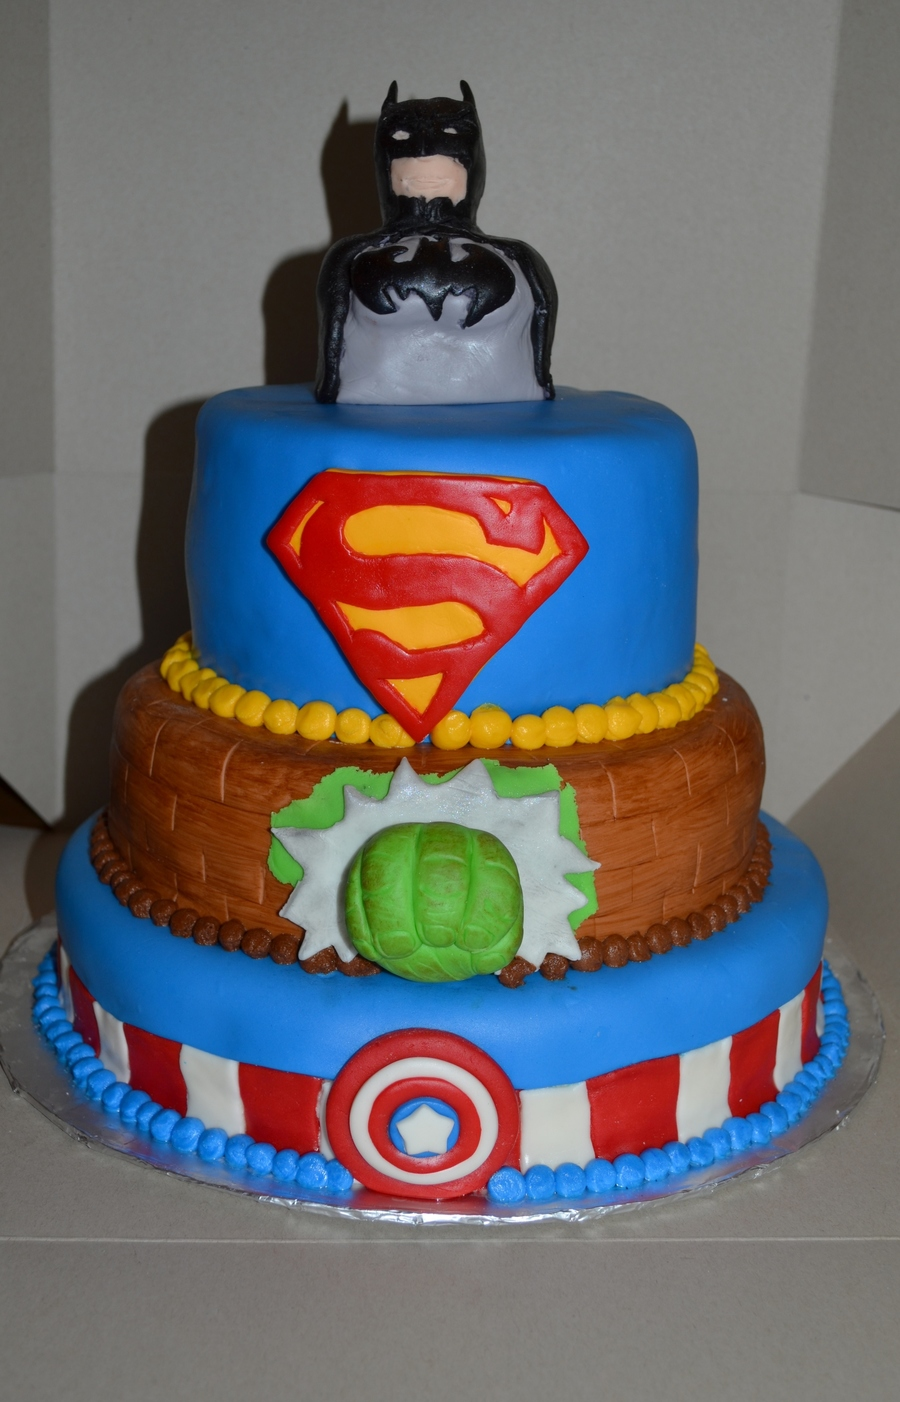 Superhero Birthday Cake Covered In Mmf on Cake Central